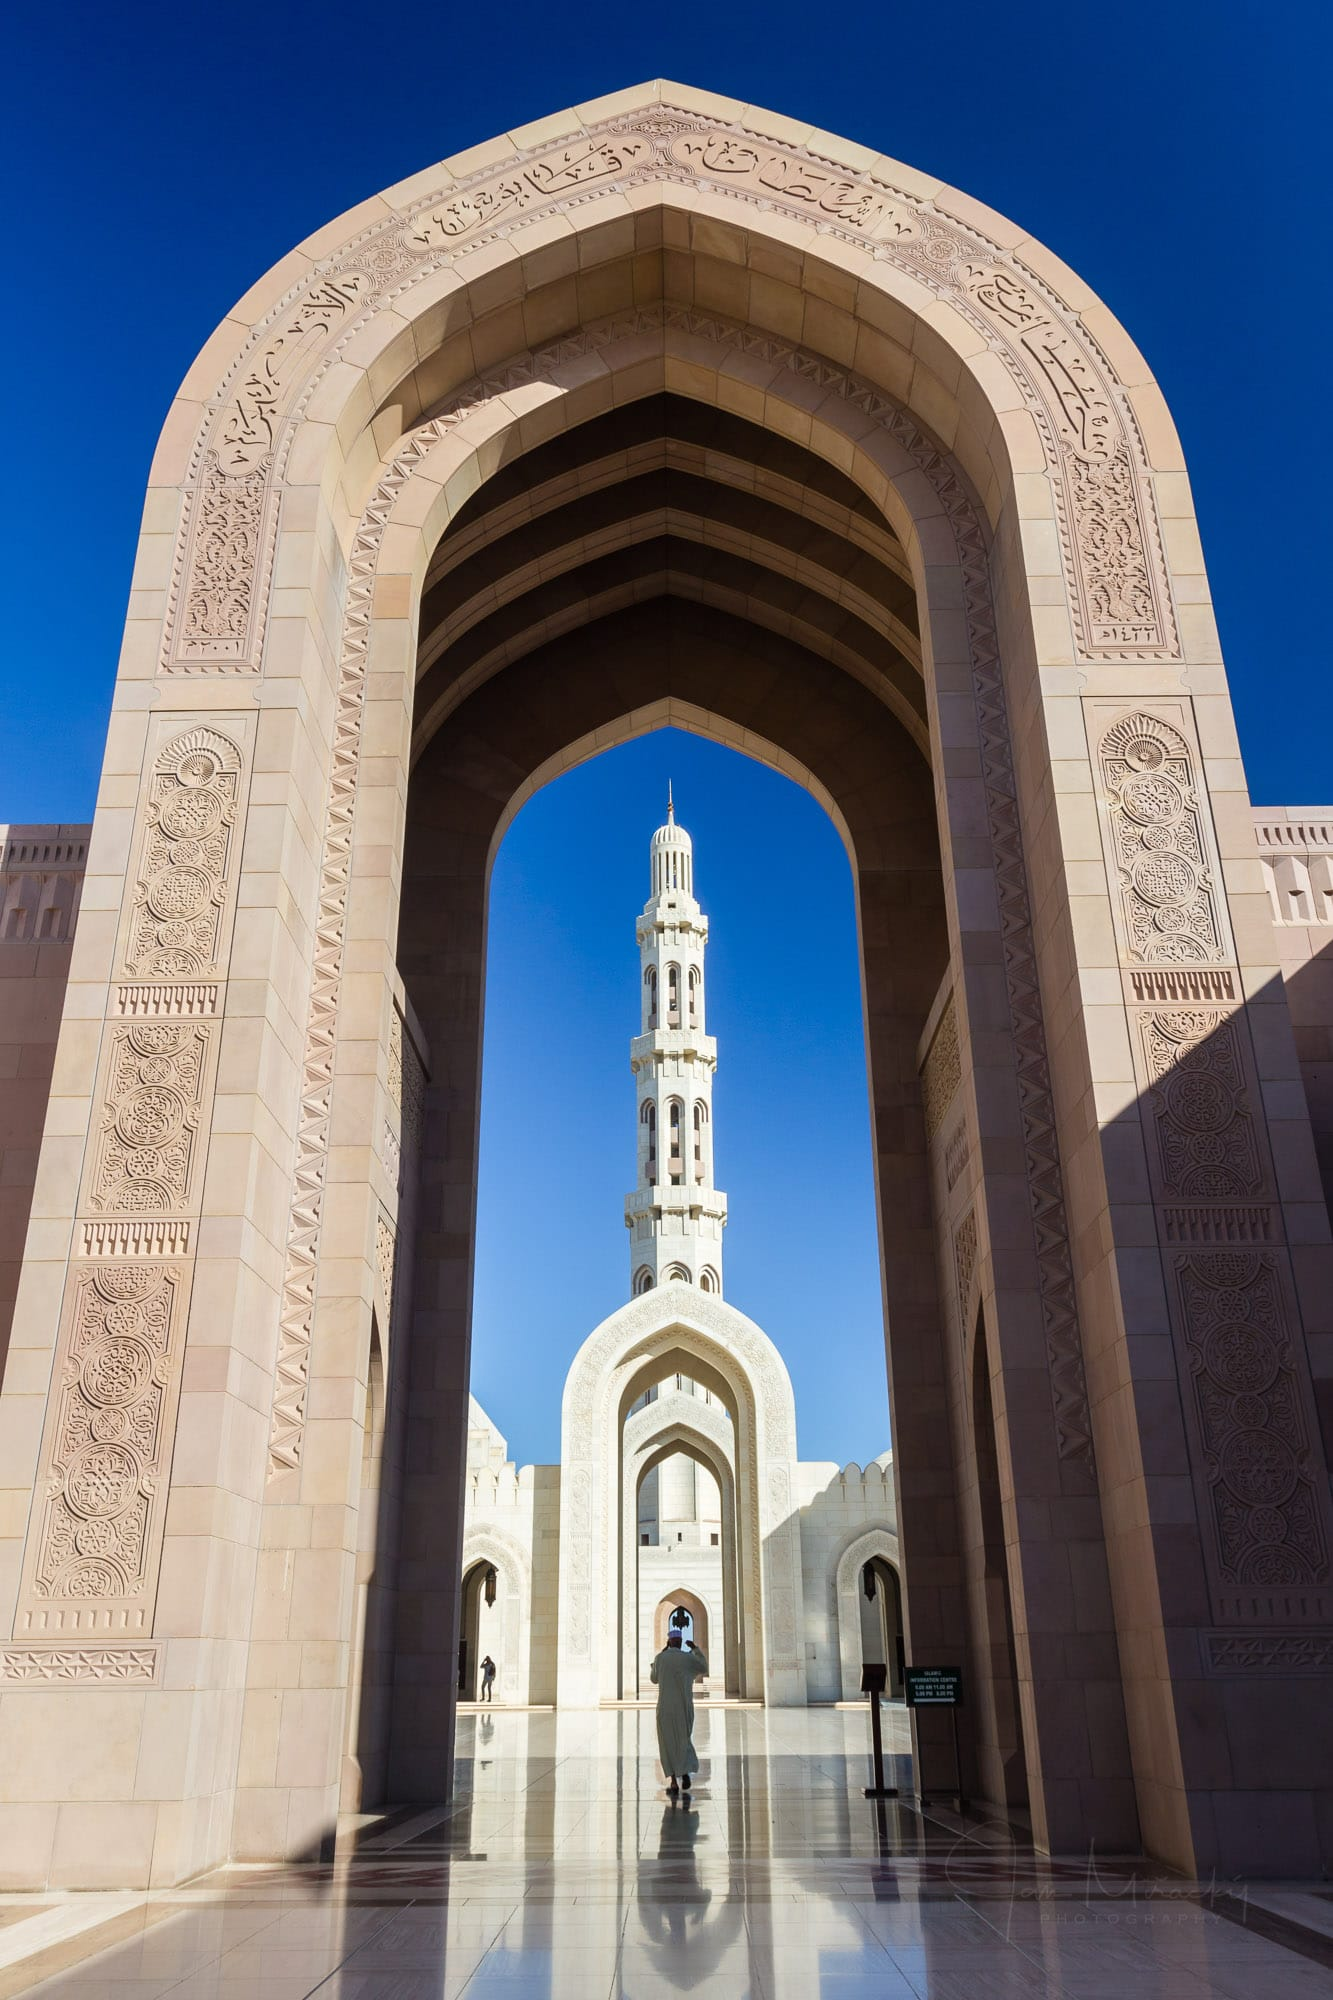 Minaret at Qaboos Mosque